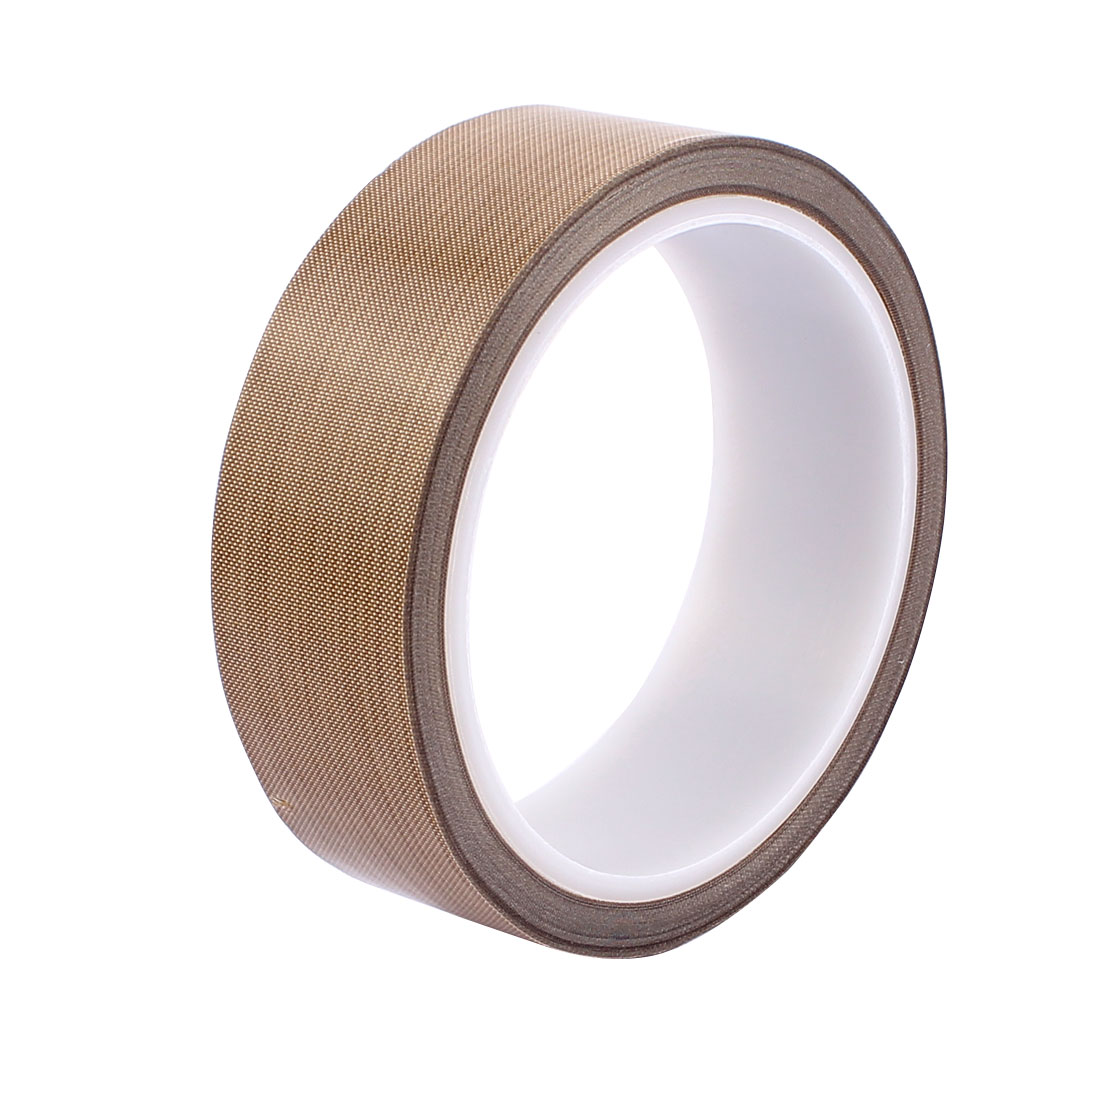 25mm Width 0.18mm Thickness 10M Long Nonstick High Temperature PTFE Adhesive Tape